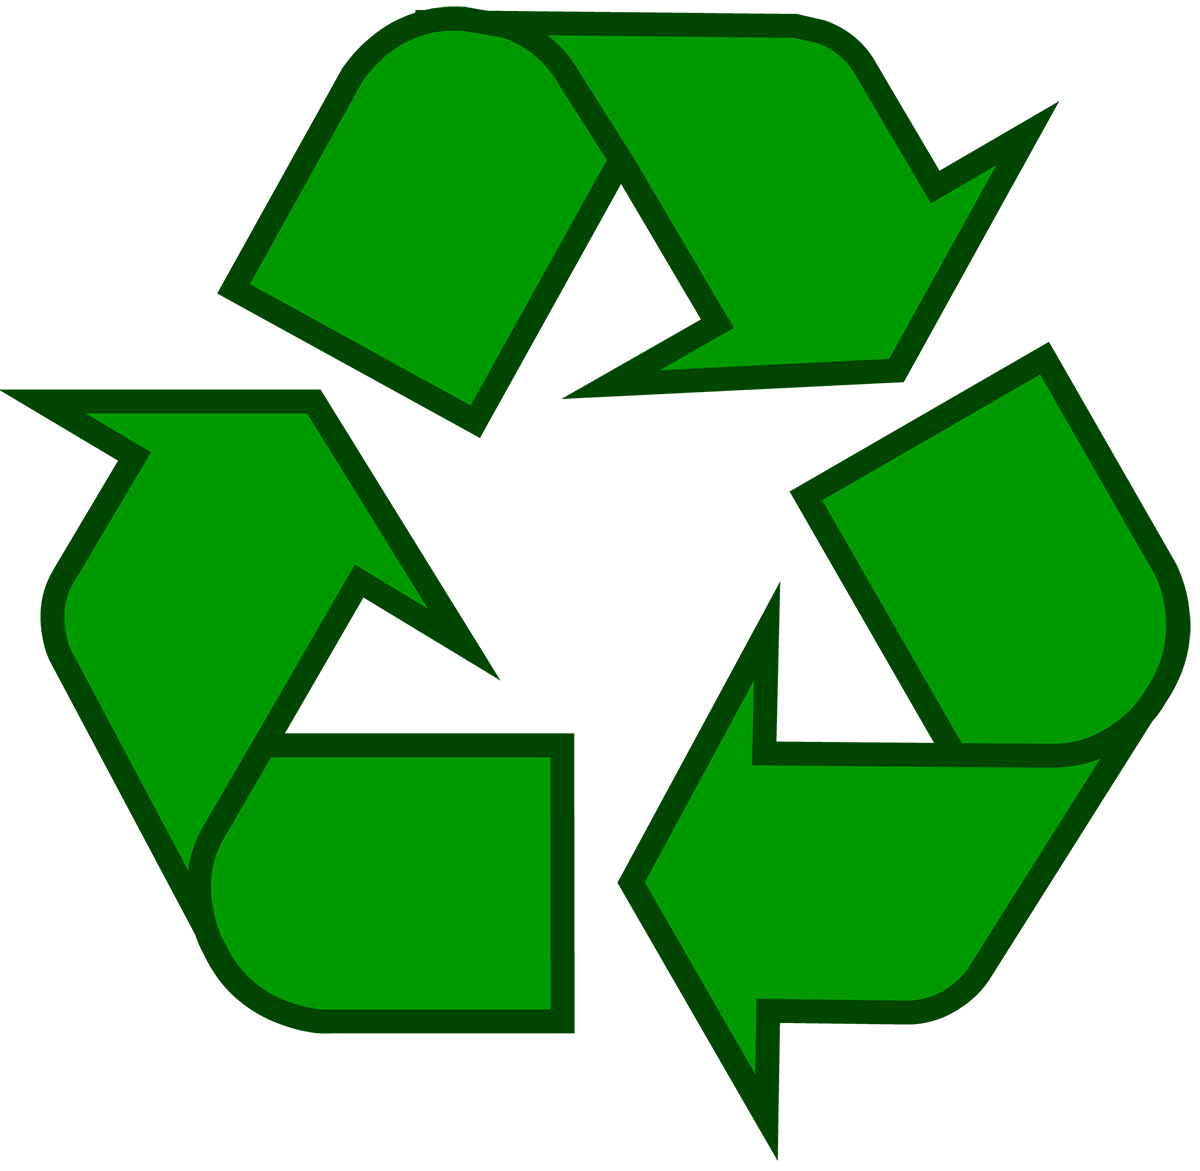 Recycling Bin Symbol Paper Recycle Free Download Image PNG Image